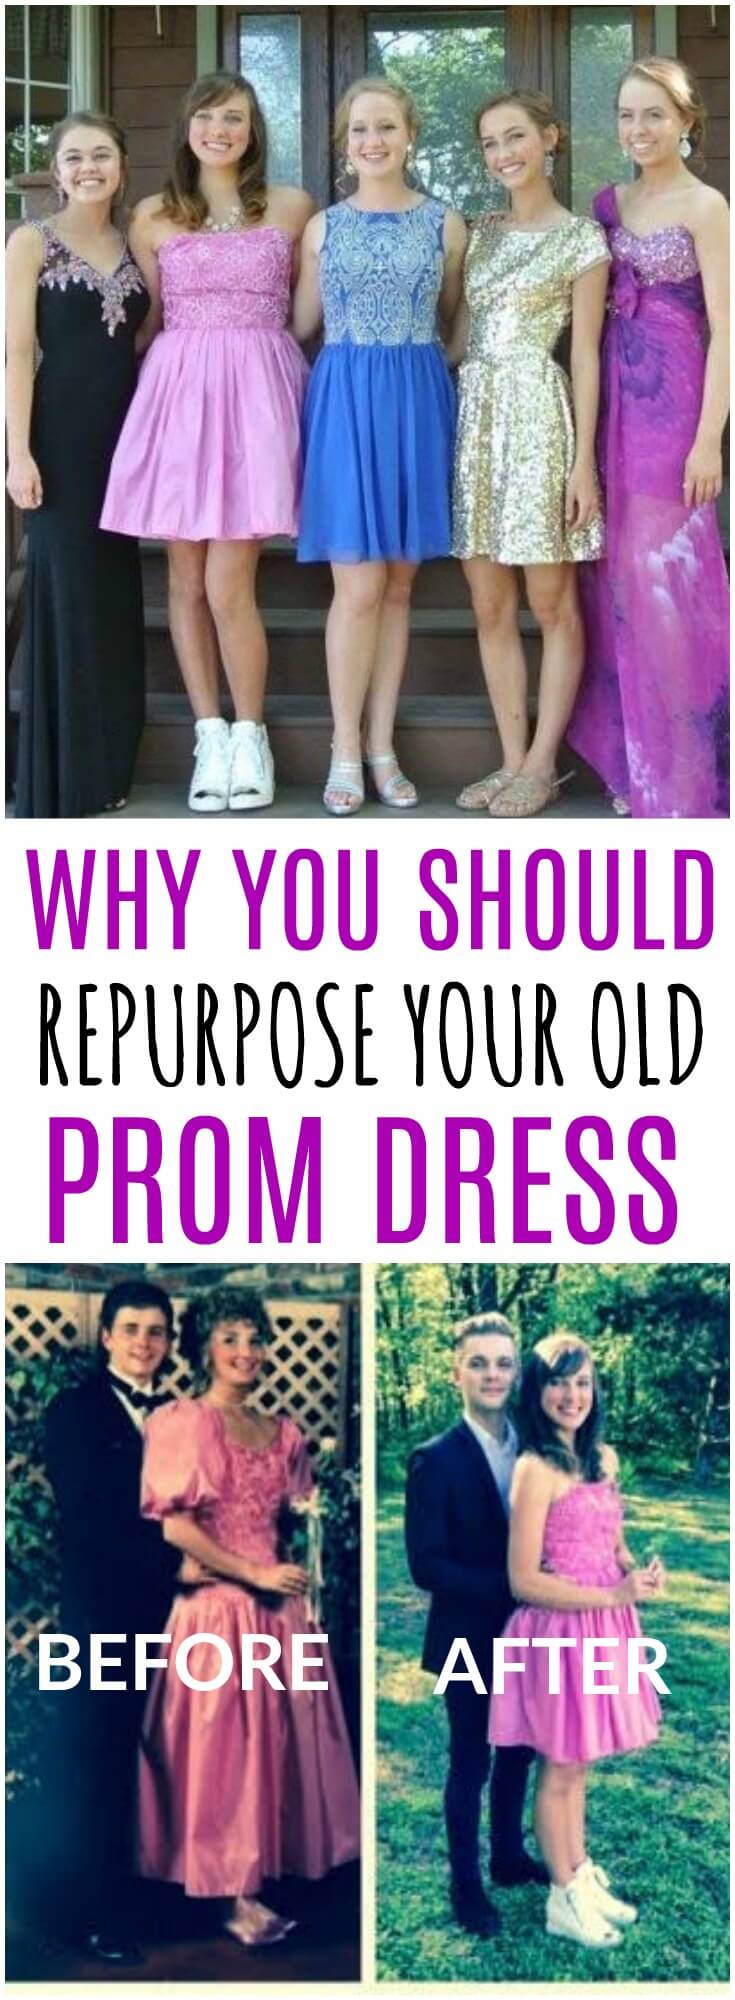 Looking for the perfect prom dress can be tough. That's why this mom took her old prom dress and turned it into something brand new for her daughter. What a special way to celebrate a fun night and save money on prom too! #prom #promnight #promdress #promdressideas #promdresses #highschool #teens #teenagers #vintageprom